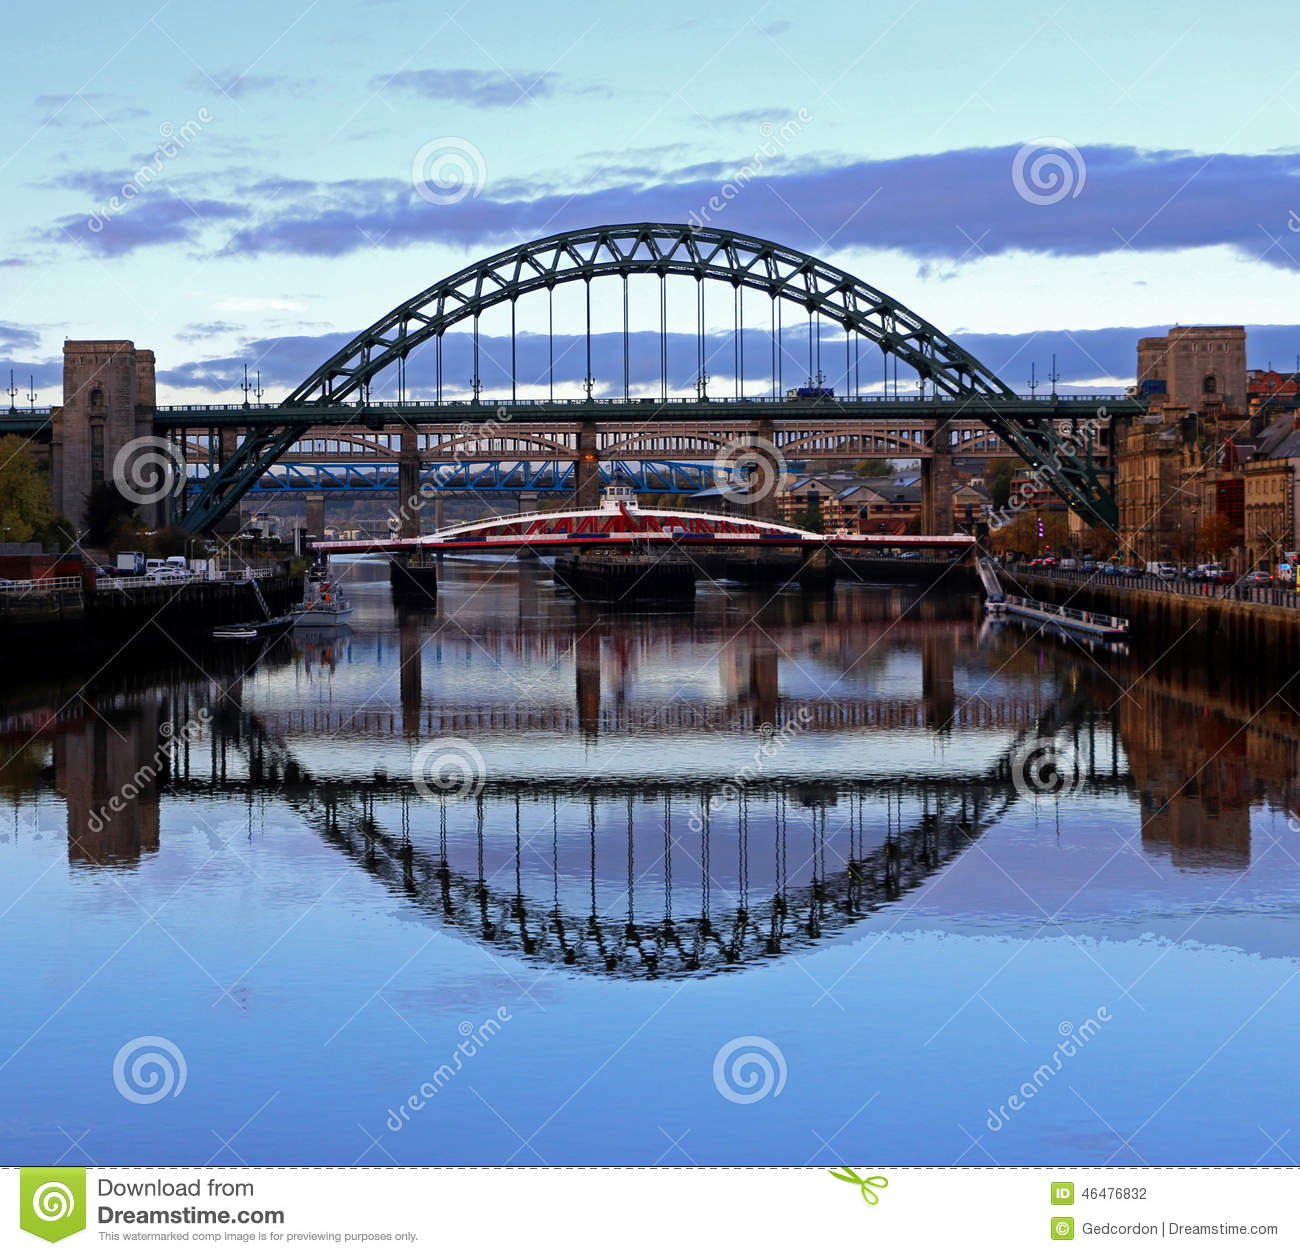 Tyne bridge clipart.